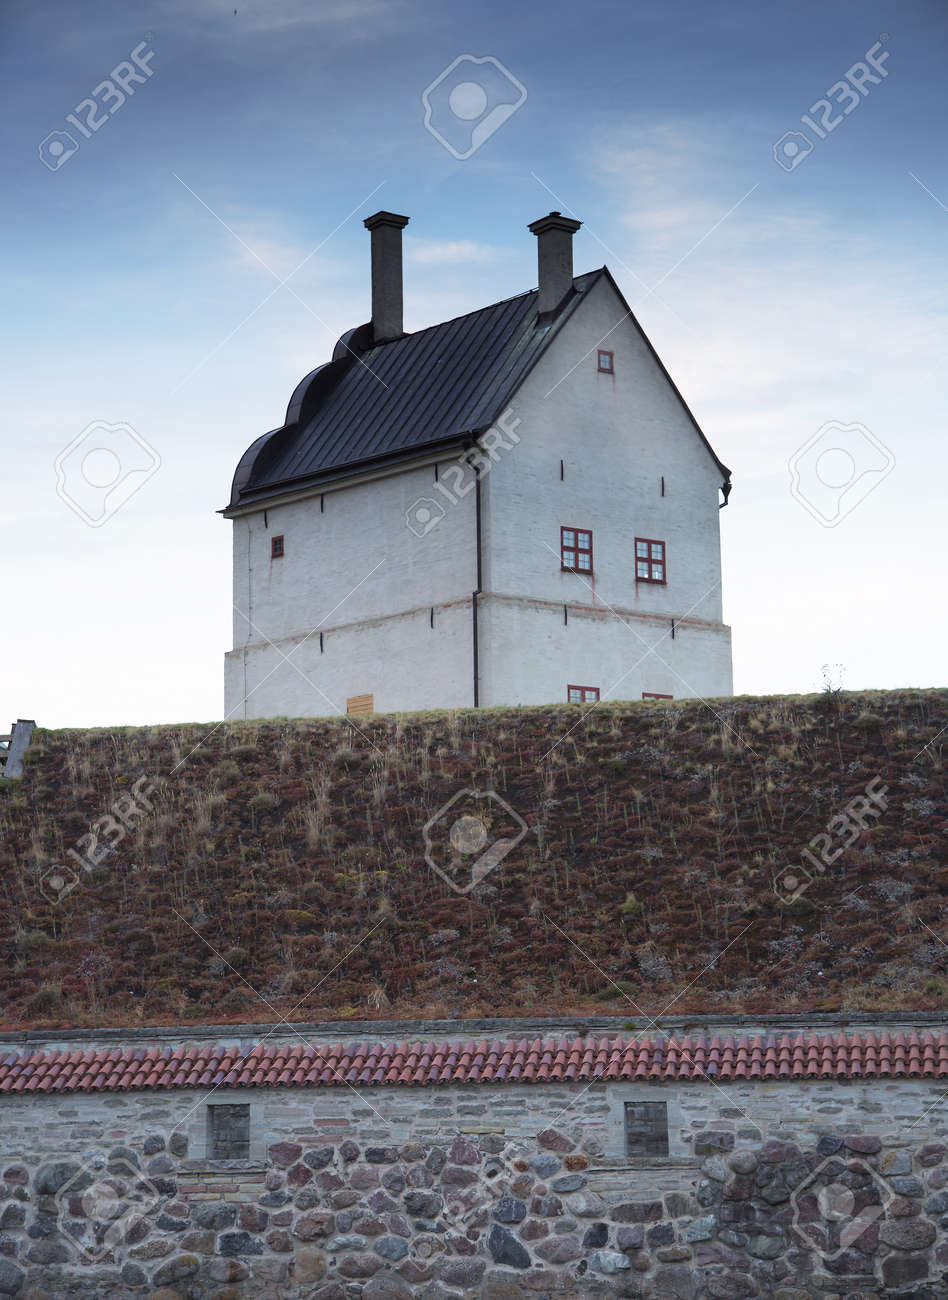 stock photo vadstena sweden july 26 2016 vadstena castle is a castle complex was built as fortification of gustav vasa in the 1500s in the southwestern